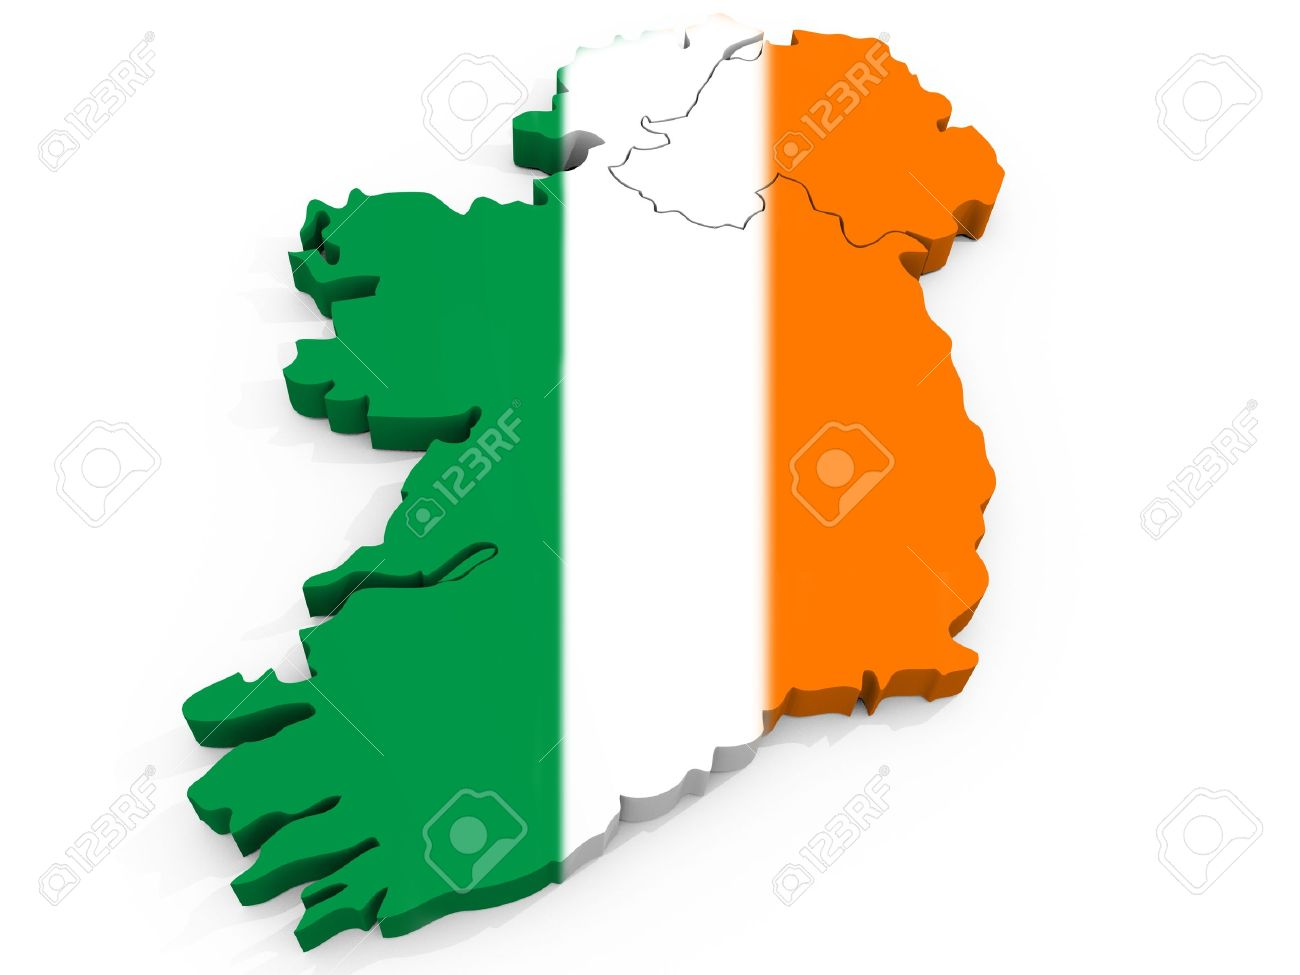 Map Of Ireland 3d.3d Map Of Ireland With Flag Republic Of Ireland